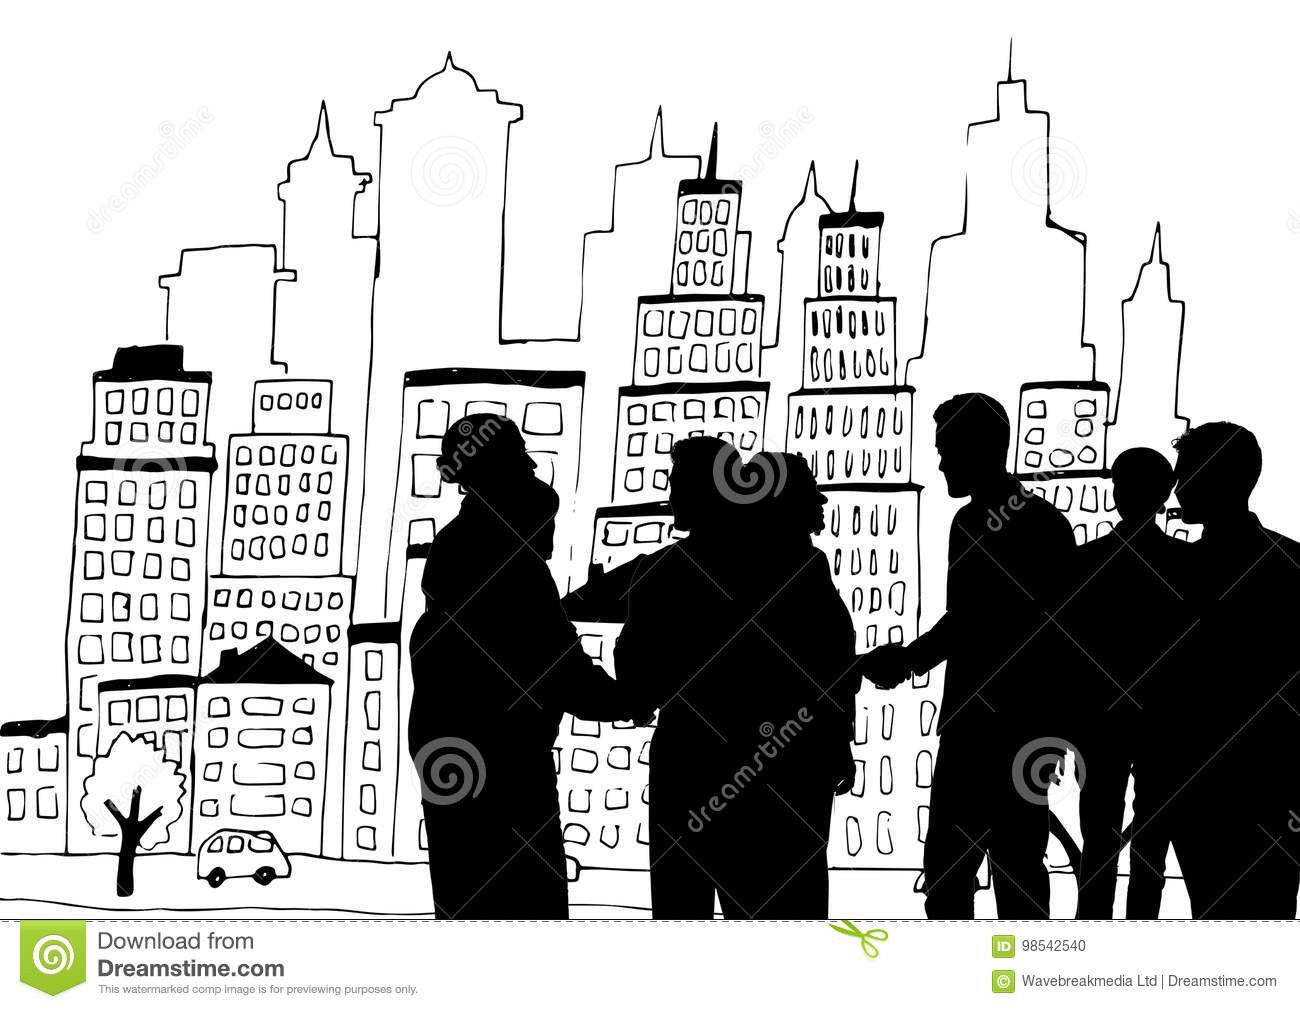 Business people silhouettes against city illustration